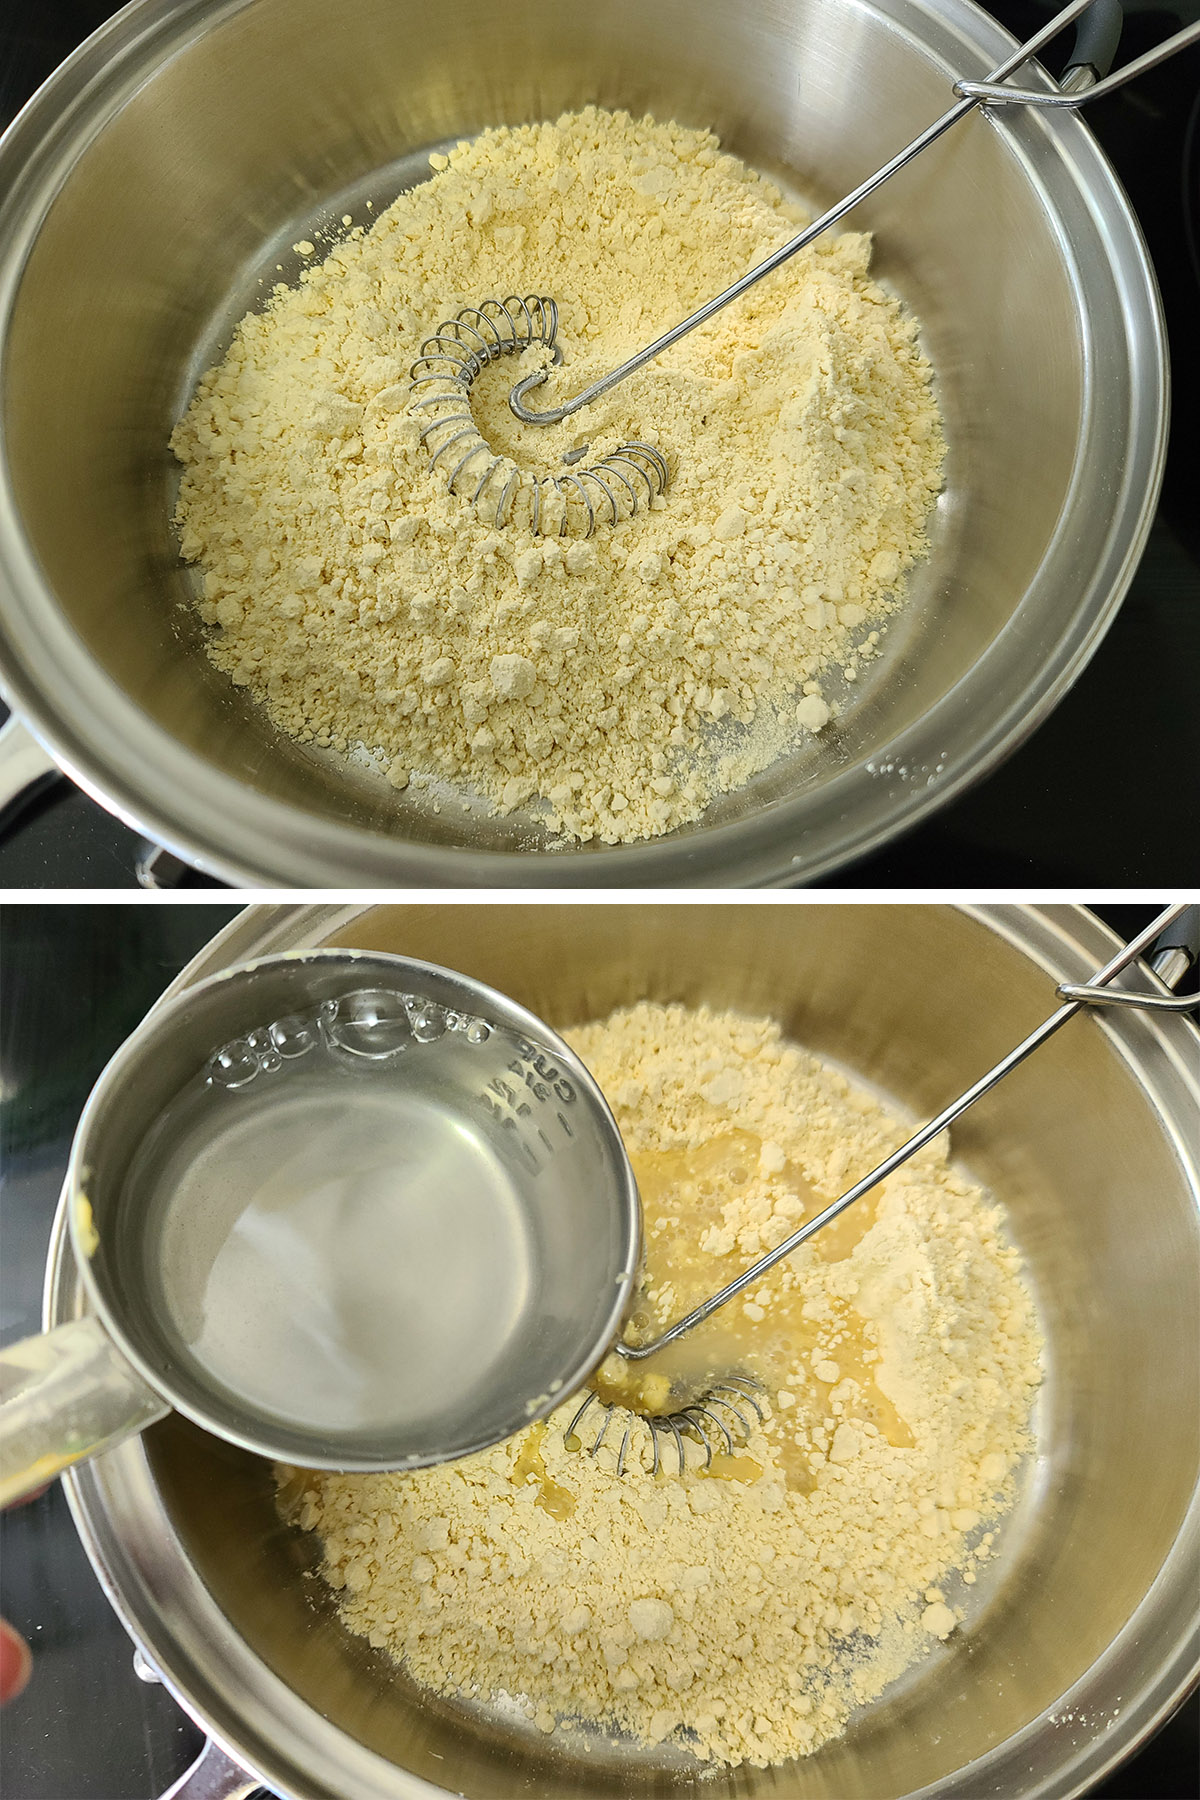 Water is being added to a chickpea flour in a pot.